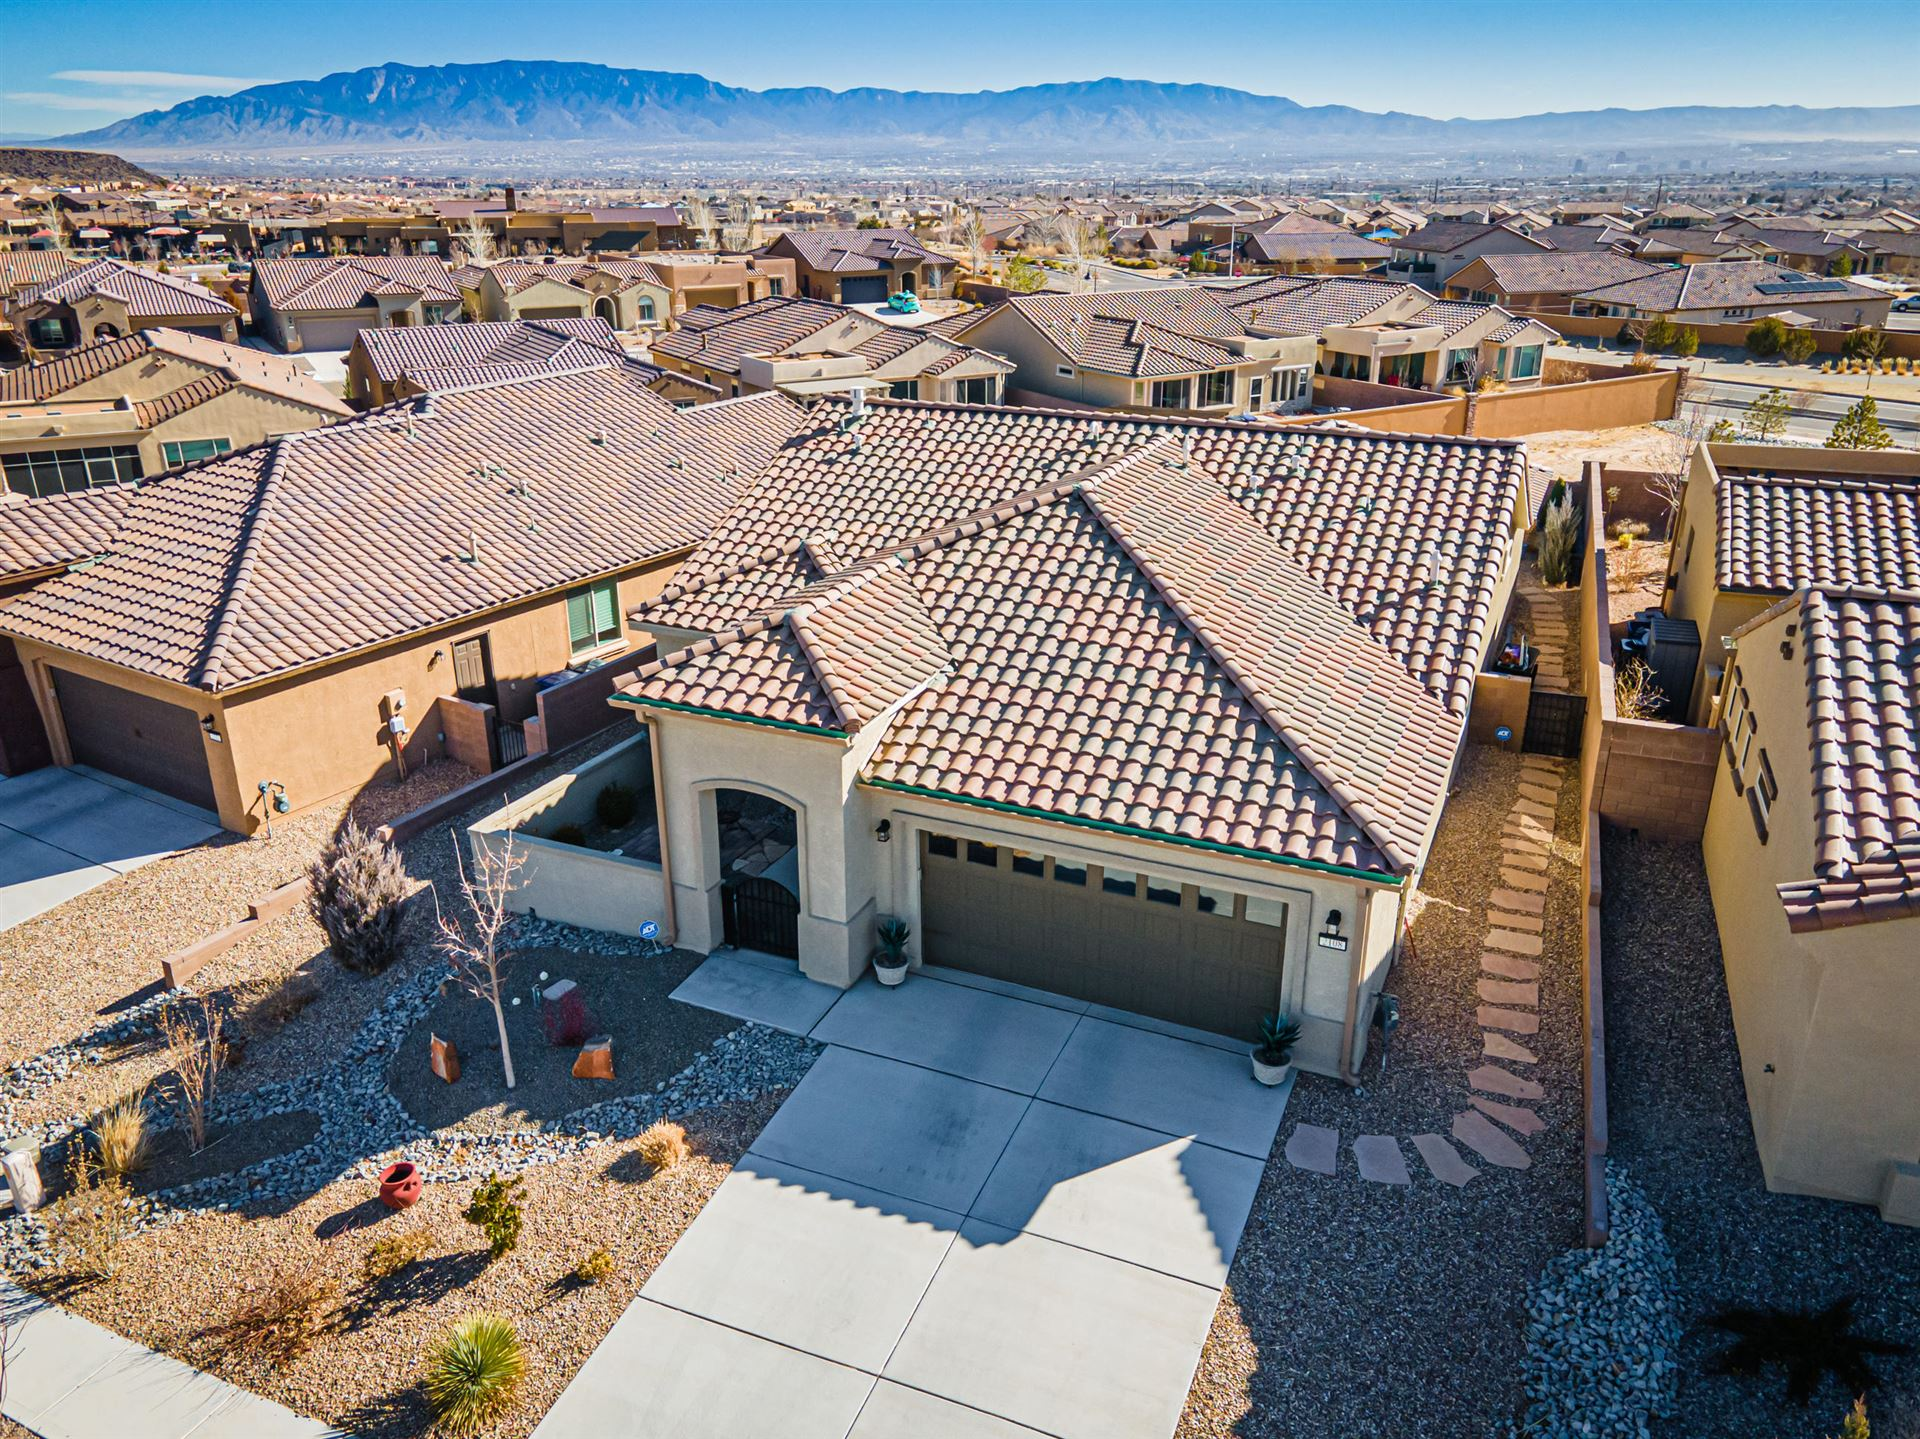 2108 WILLOW CANYON Trail NW, Albuquerque, NM 87120 - MLS#: 985442